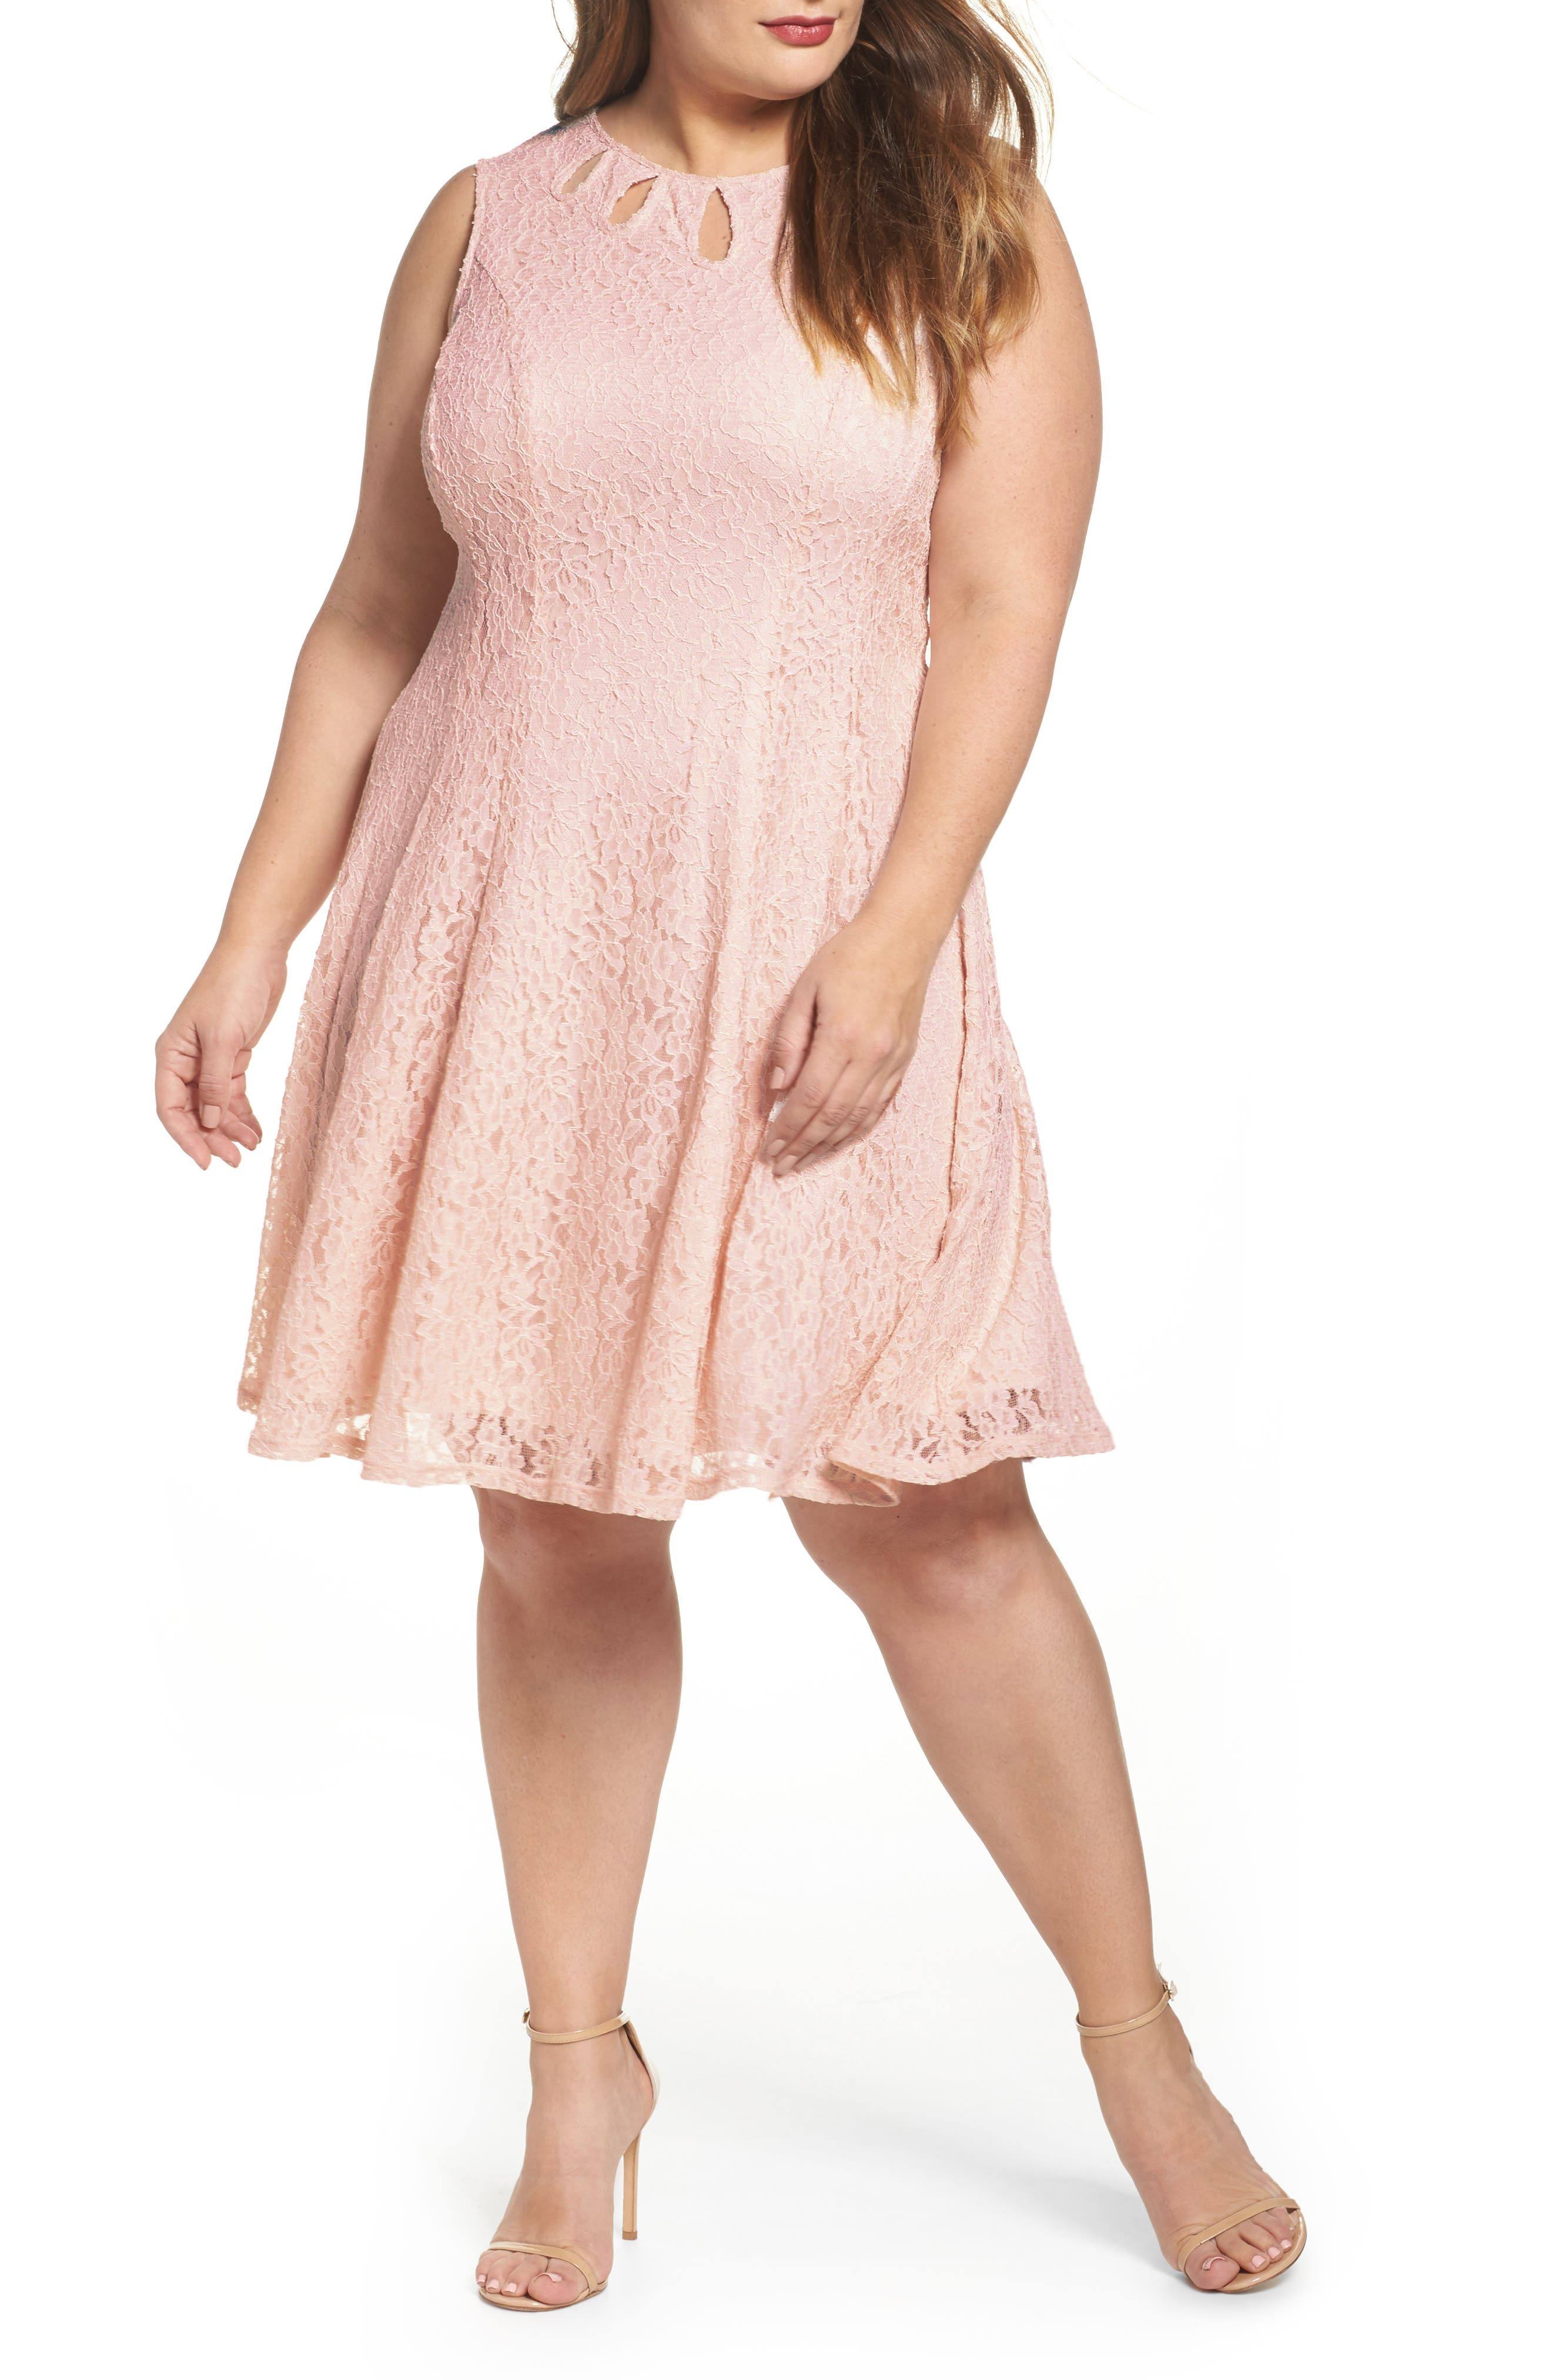 Lace Teardrop Cutout Fit and Flare Dress,                         Main,                         color, Pink/ Pink